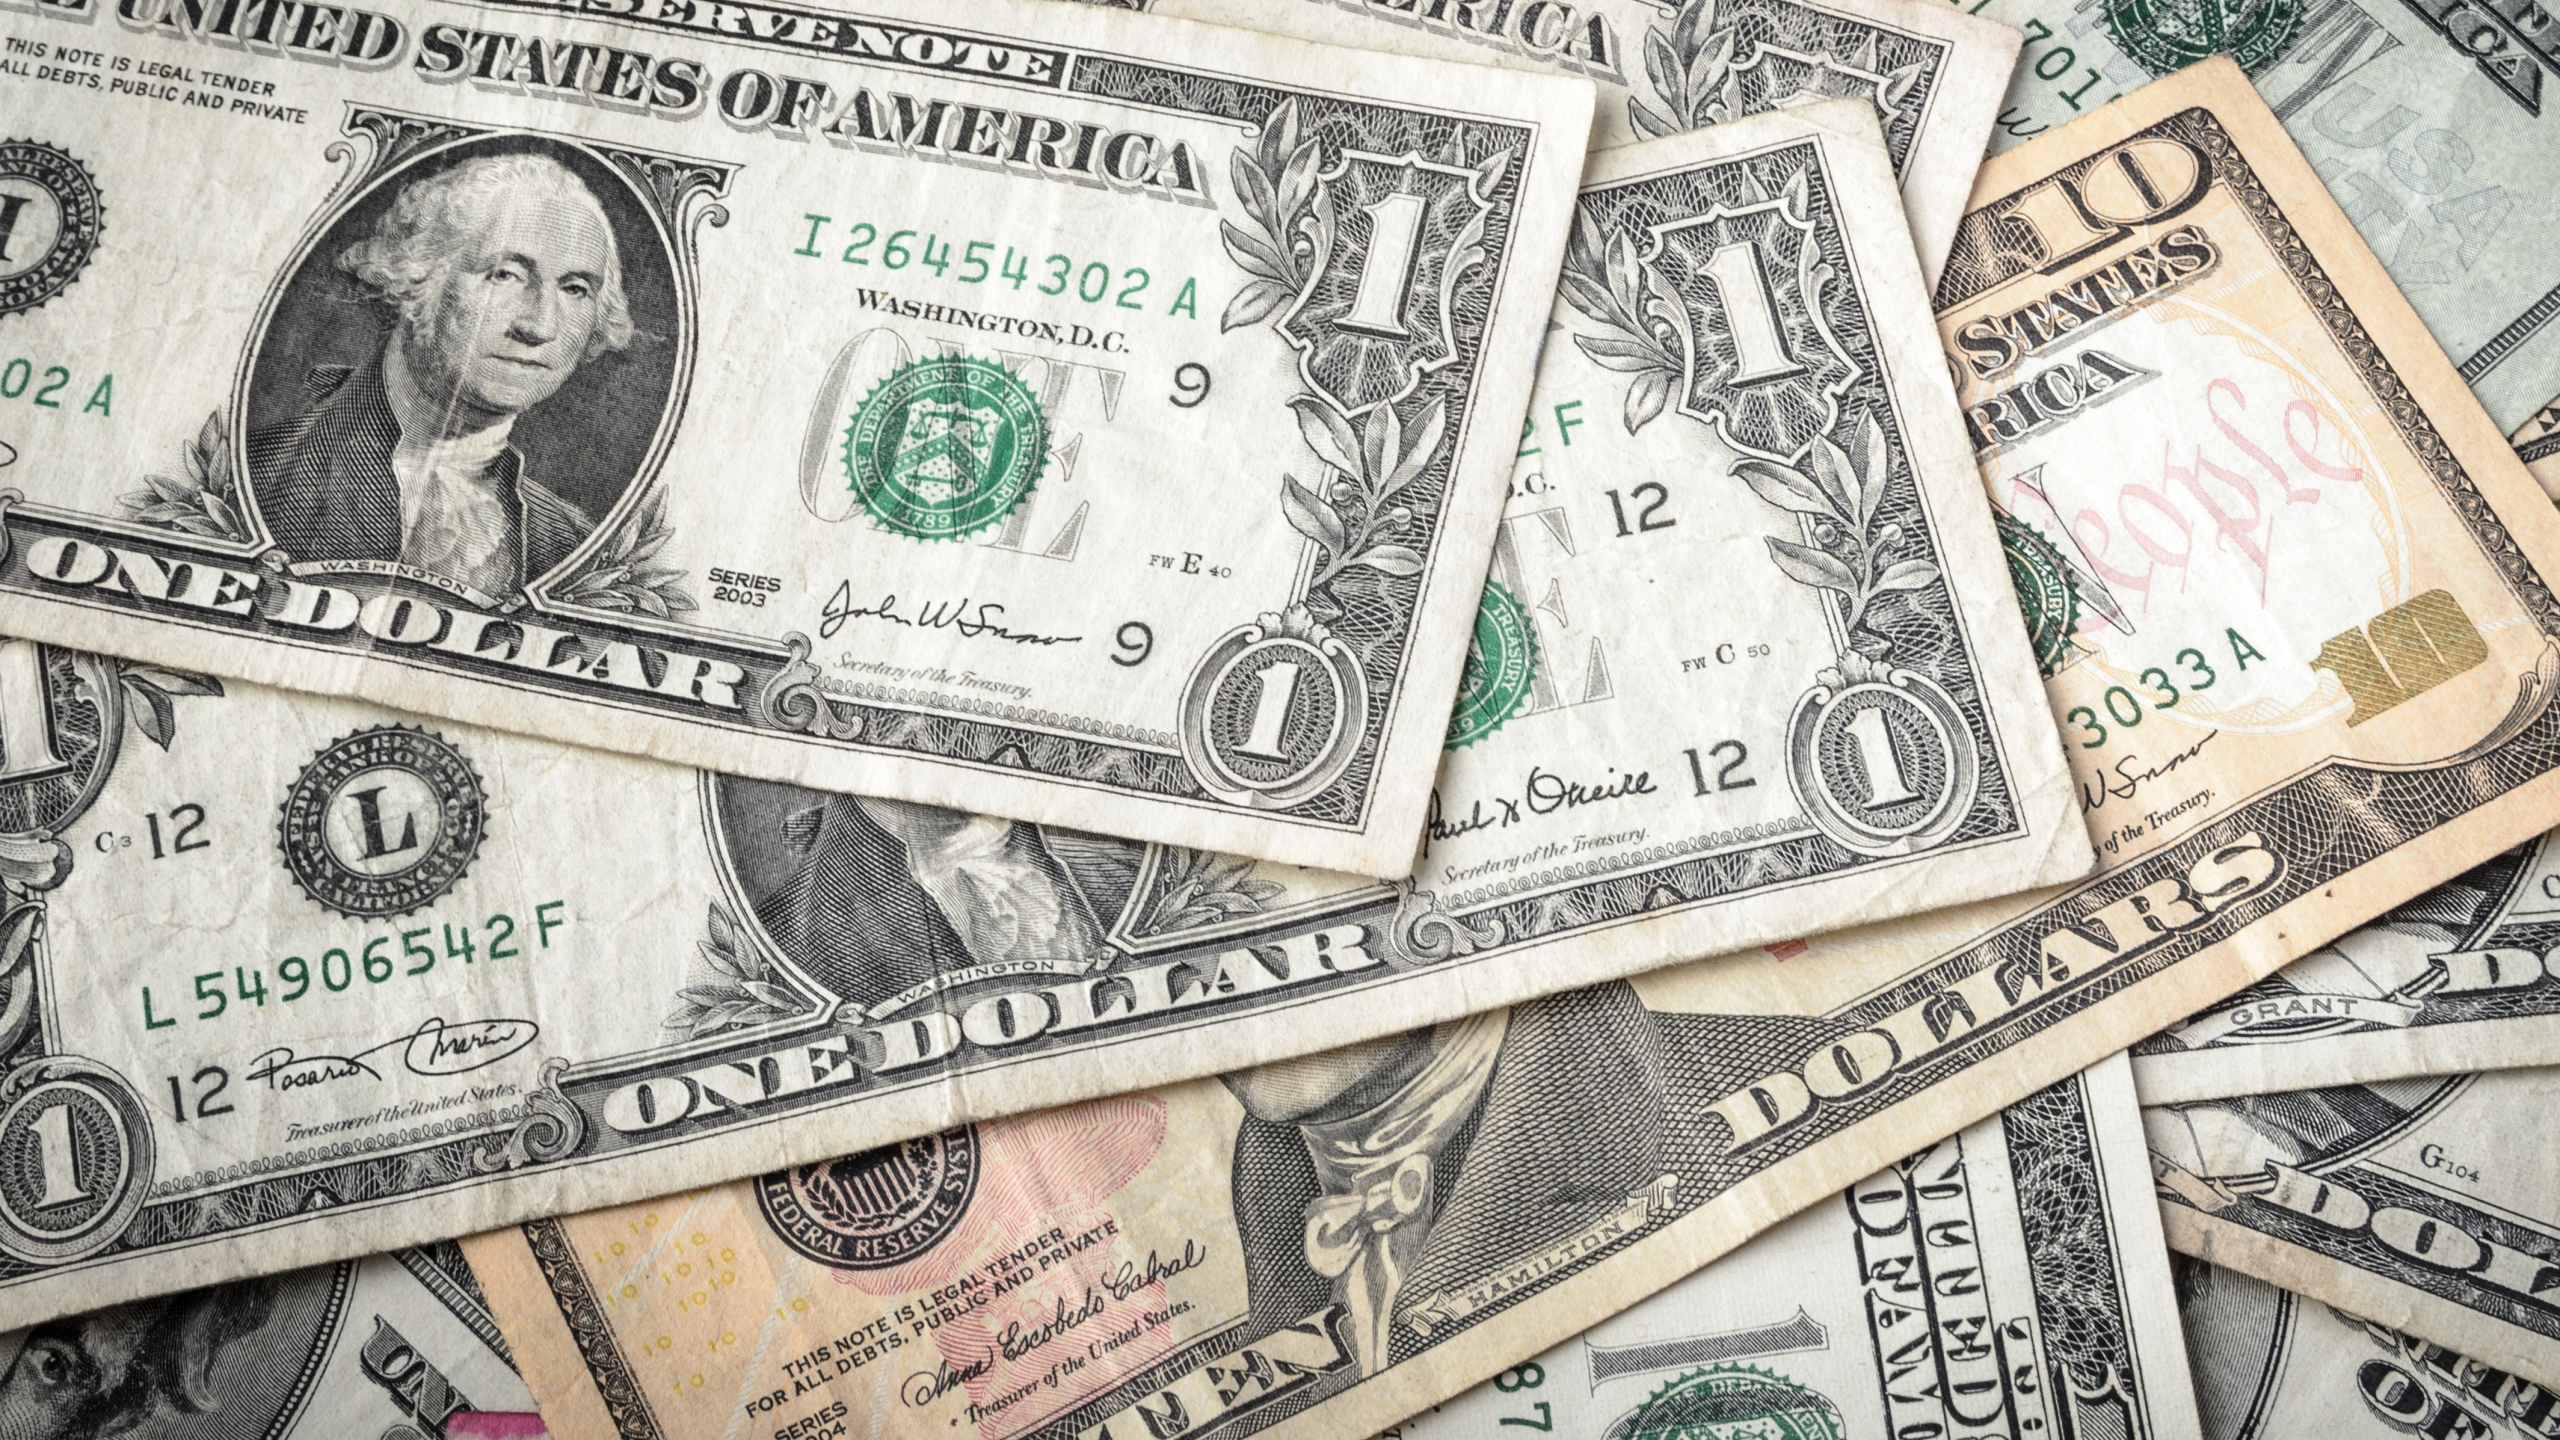 NYC councilman proposes bill to ban cashlessbusinesses